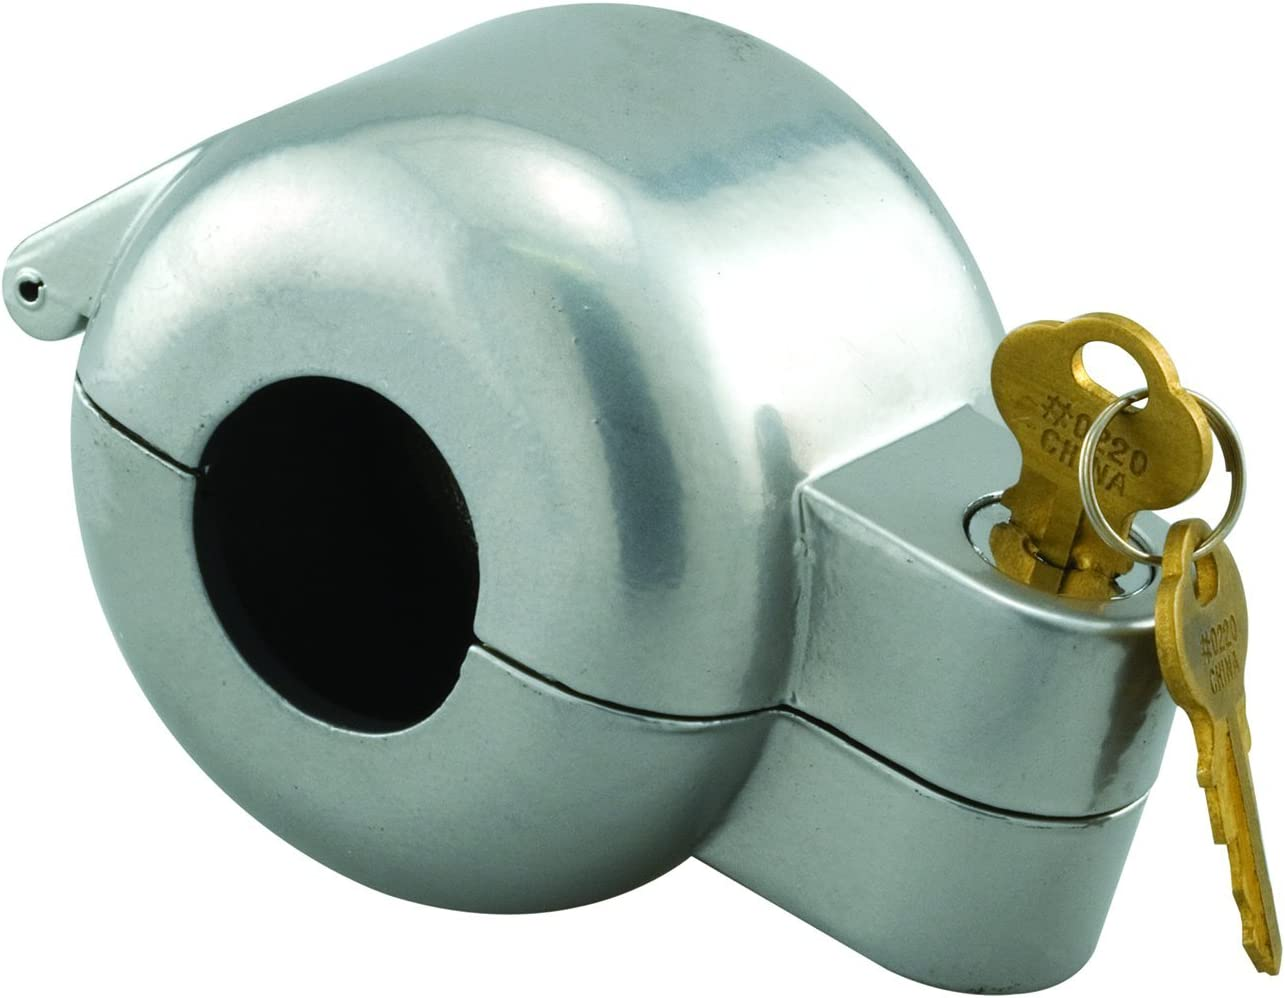 """Defender Security S 4180 Doorknob Lock-Out Device – Doorknob Lock with Key to Block Access to Keyhole, Removeable and Easy to Use, Fits Round Doorknobs with Max Diameter of 2-7/8"""""""